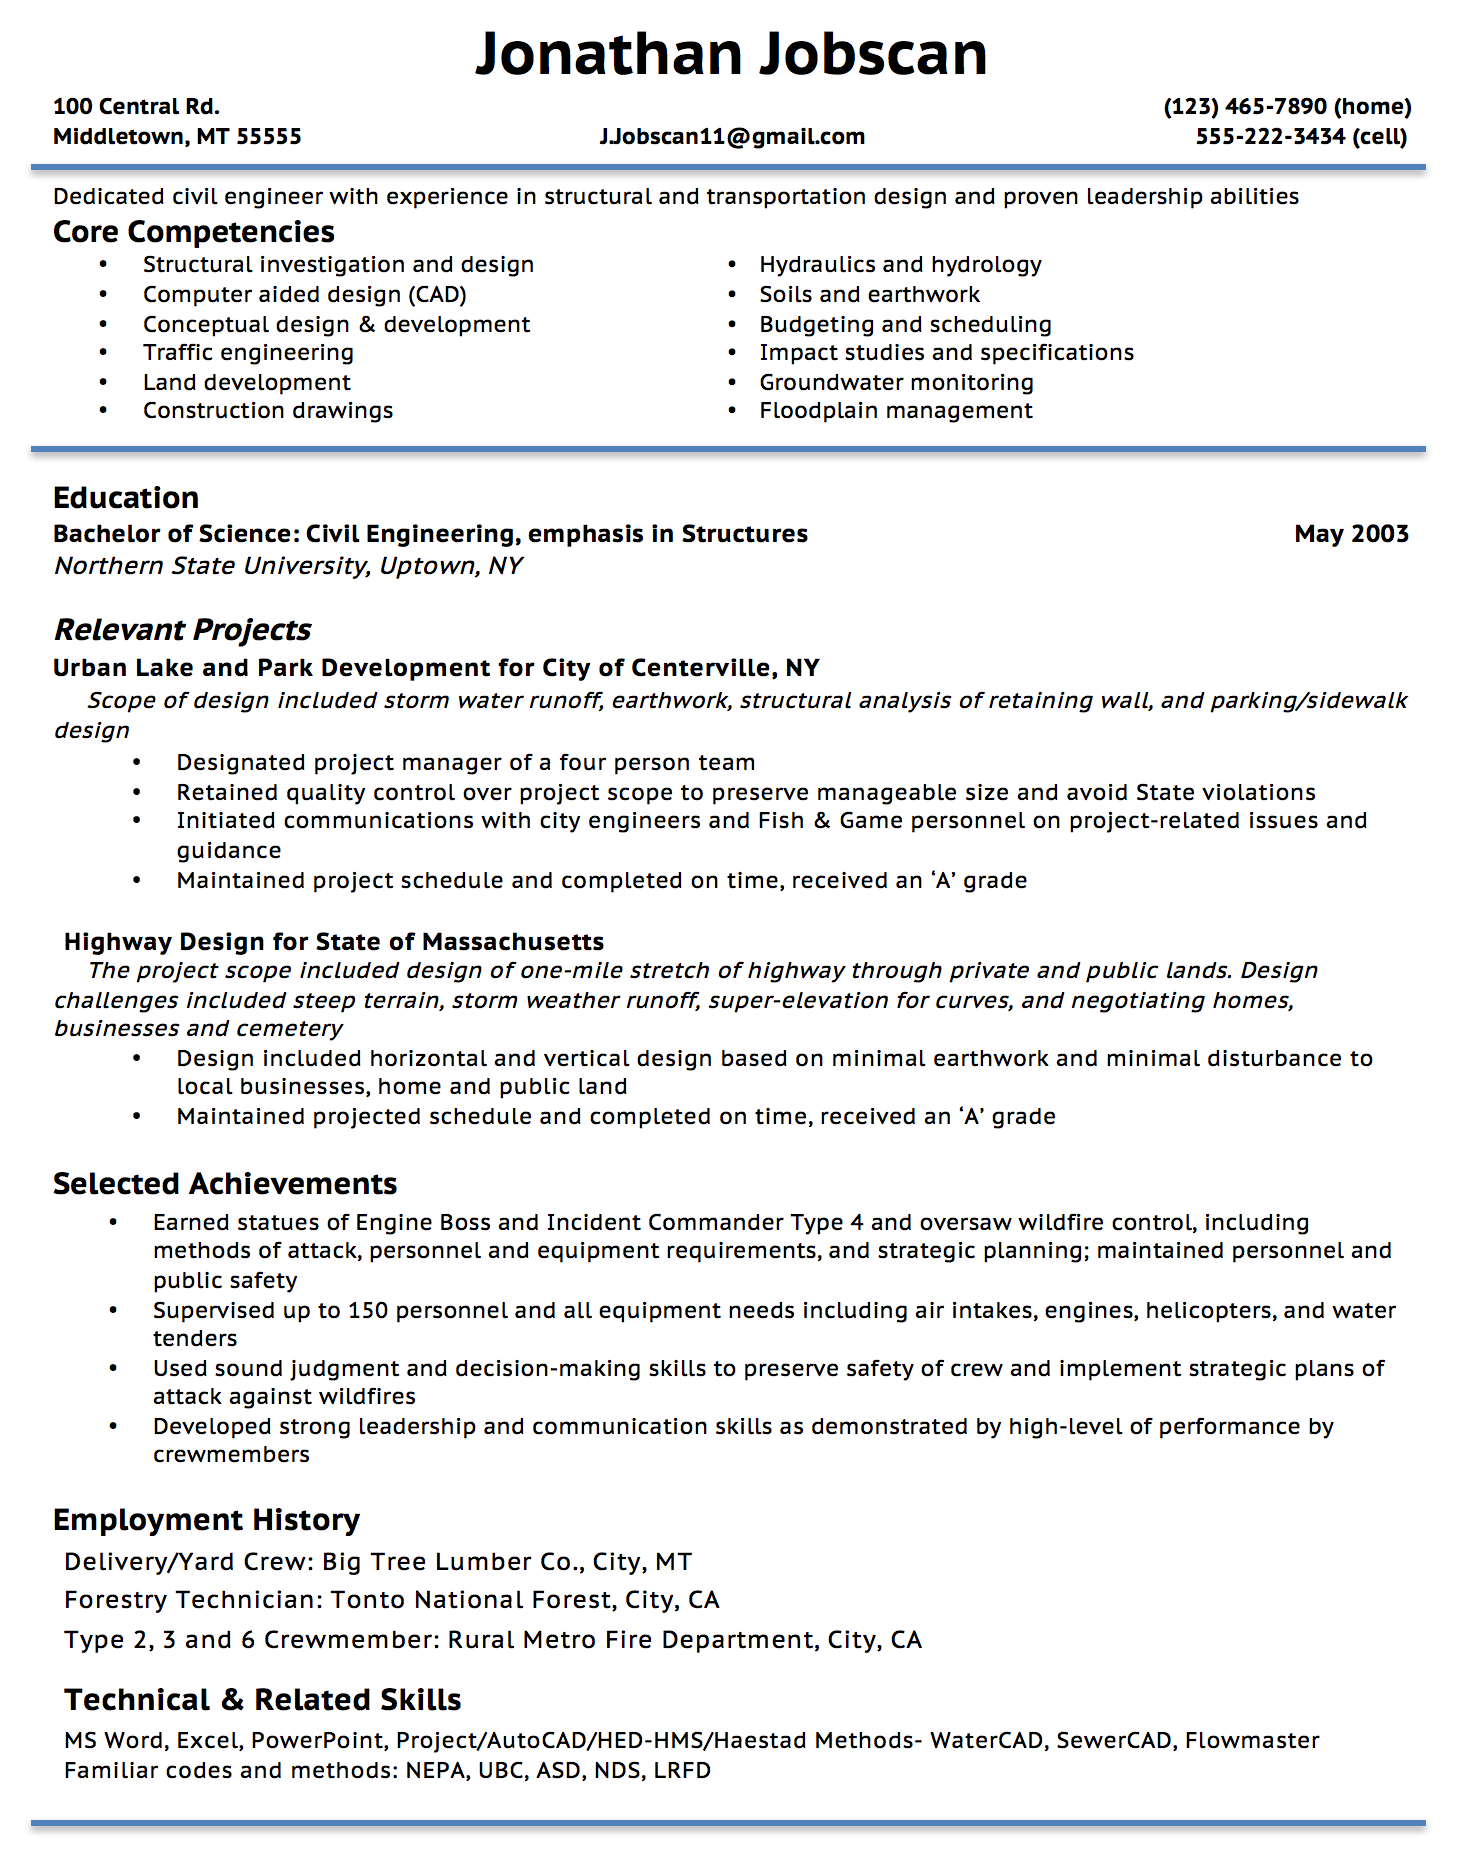 Opposenewapstandardsus  Seductive Resume Writing Guide  Jobscan With Marvelous Example Of A Functional Resume Format With Breathtaking Walmart Resume Also Dog Walker Resume In Addition Cna Skills For Resume And Sharepoint Resume As Well As Resume Templates Word Download Additionally Package Handler Resume From Jobscanco With Opposenewapstandardsus  Marvelous Resume Writing Guide  Jobscan With Breathtaking Example Of A Functional Resume Format And Seductive Walmart Resume Also Dog Walker Resume In Addition Cna Skills For Resume From Jobscanco